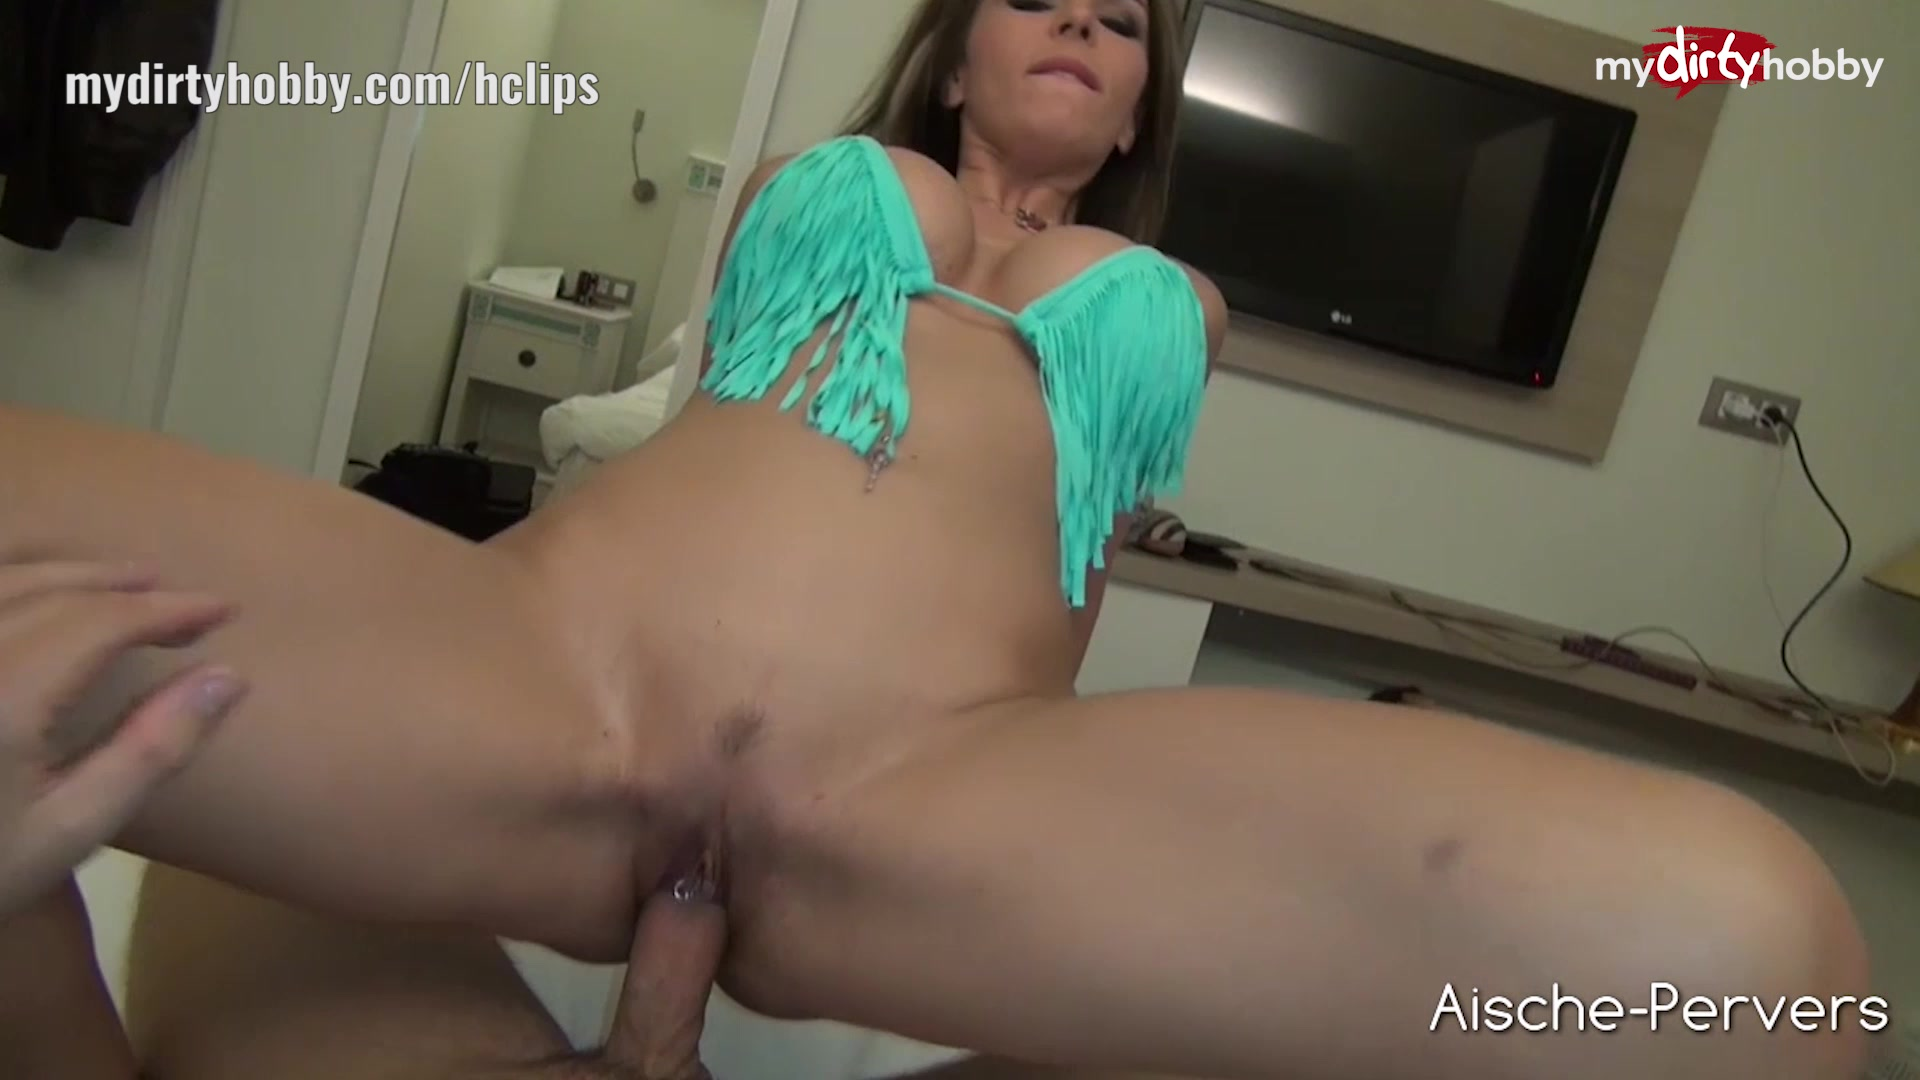 Aische pervers disco porno hardcore version